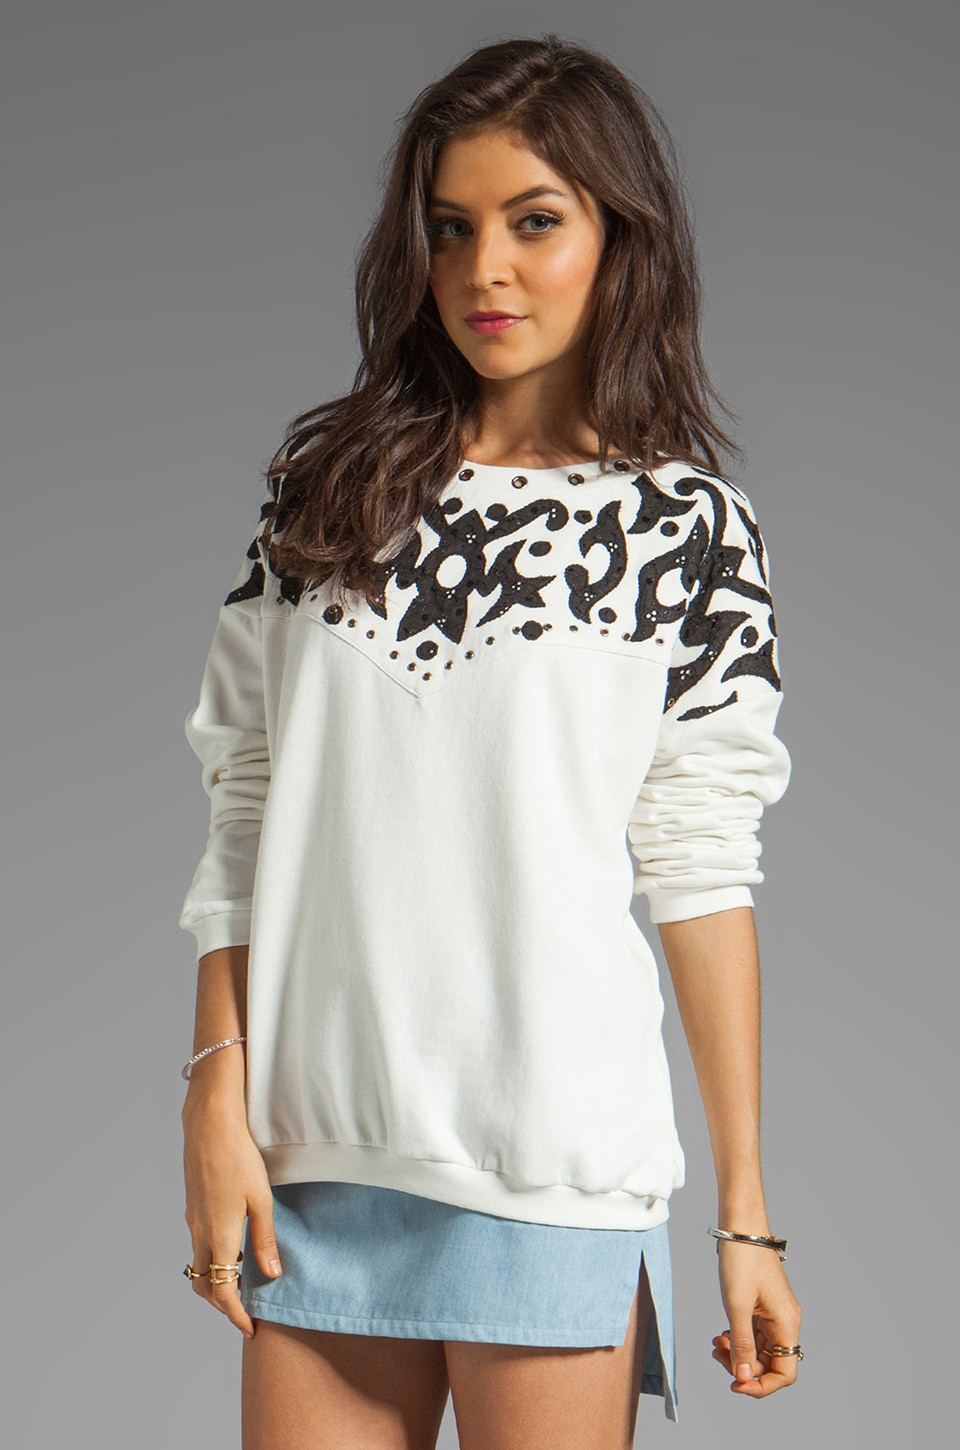 April, May April May Aspen Sweatshirt in Ecru